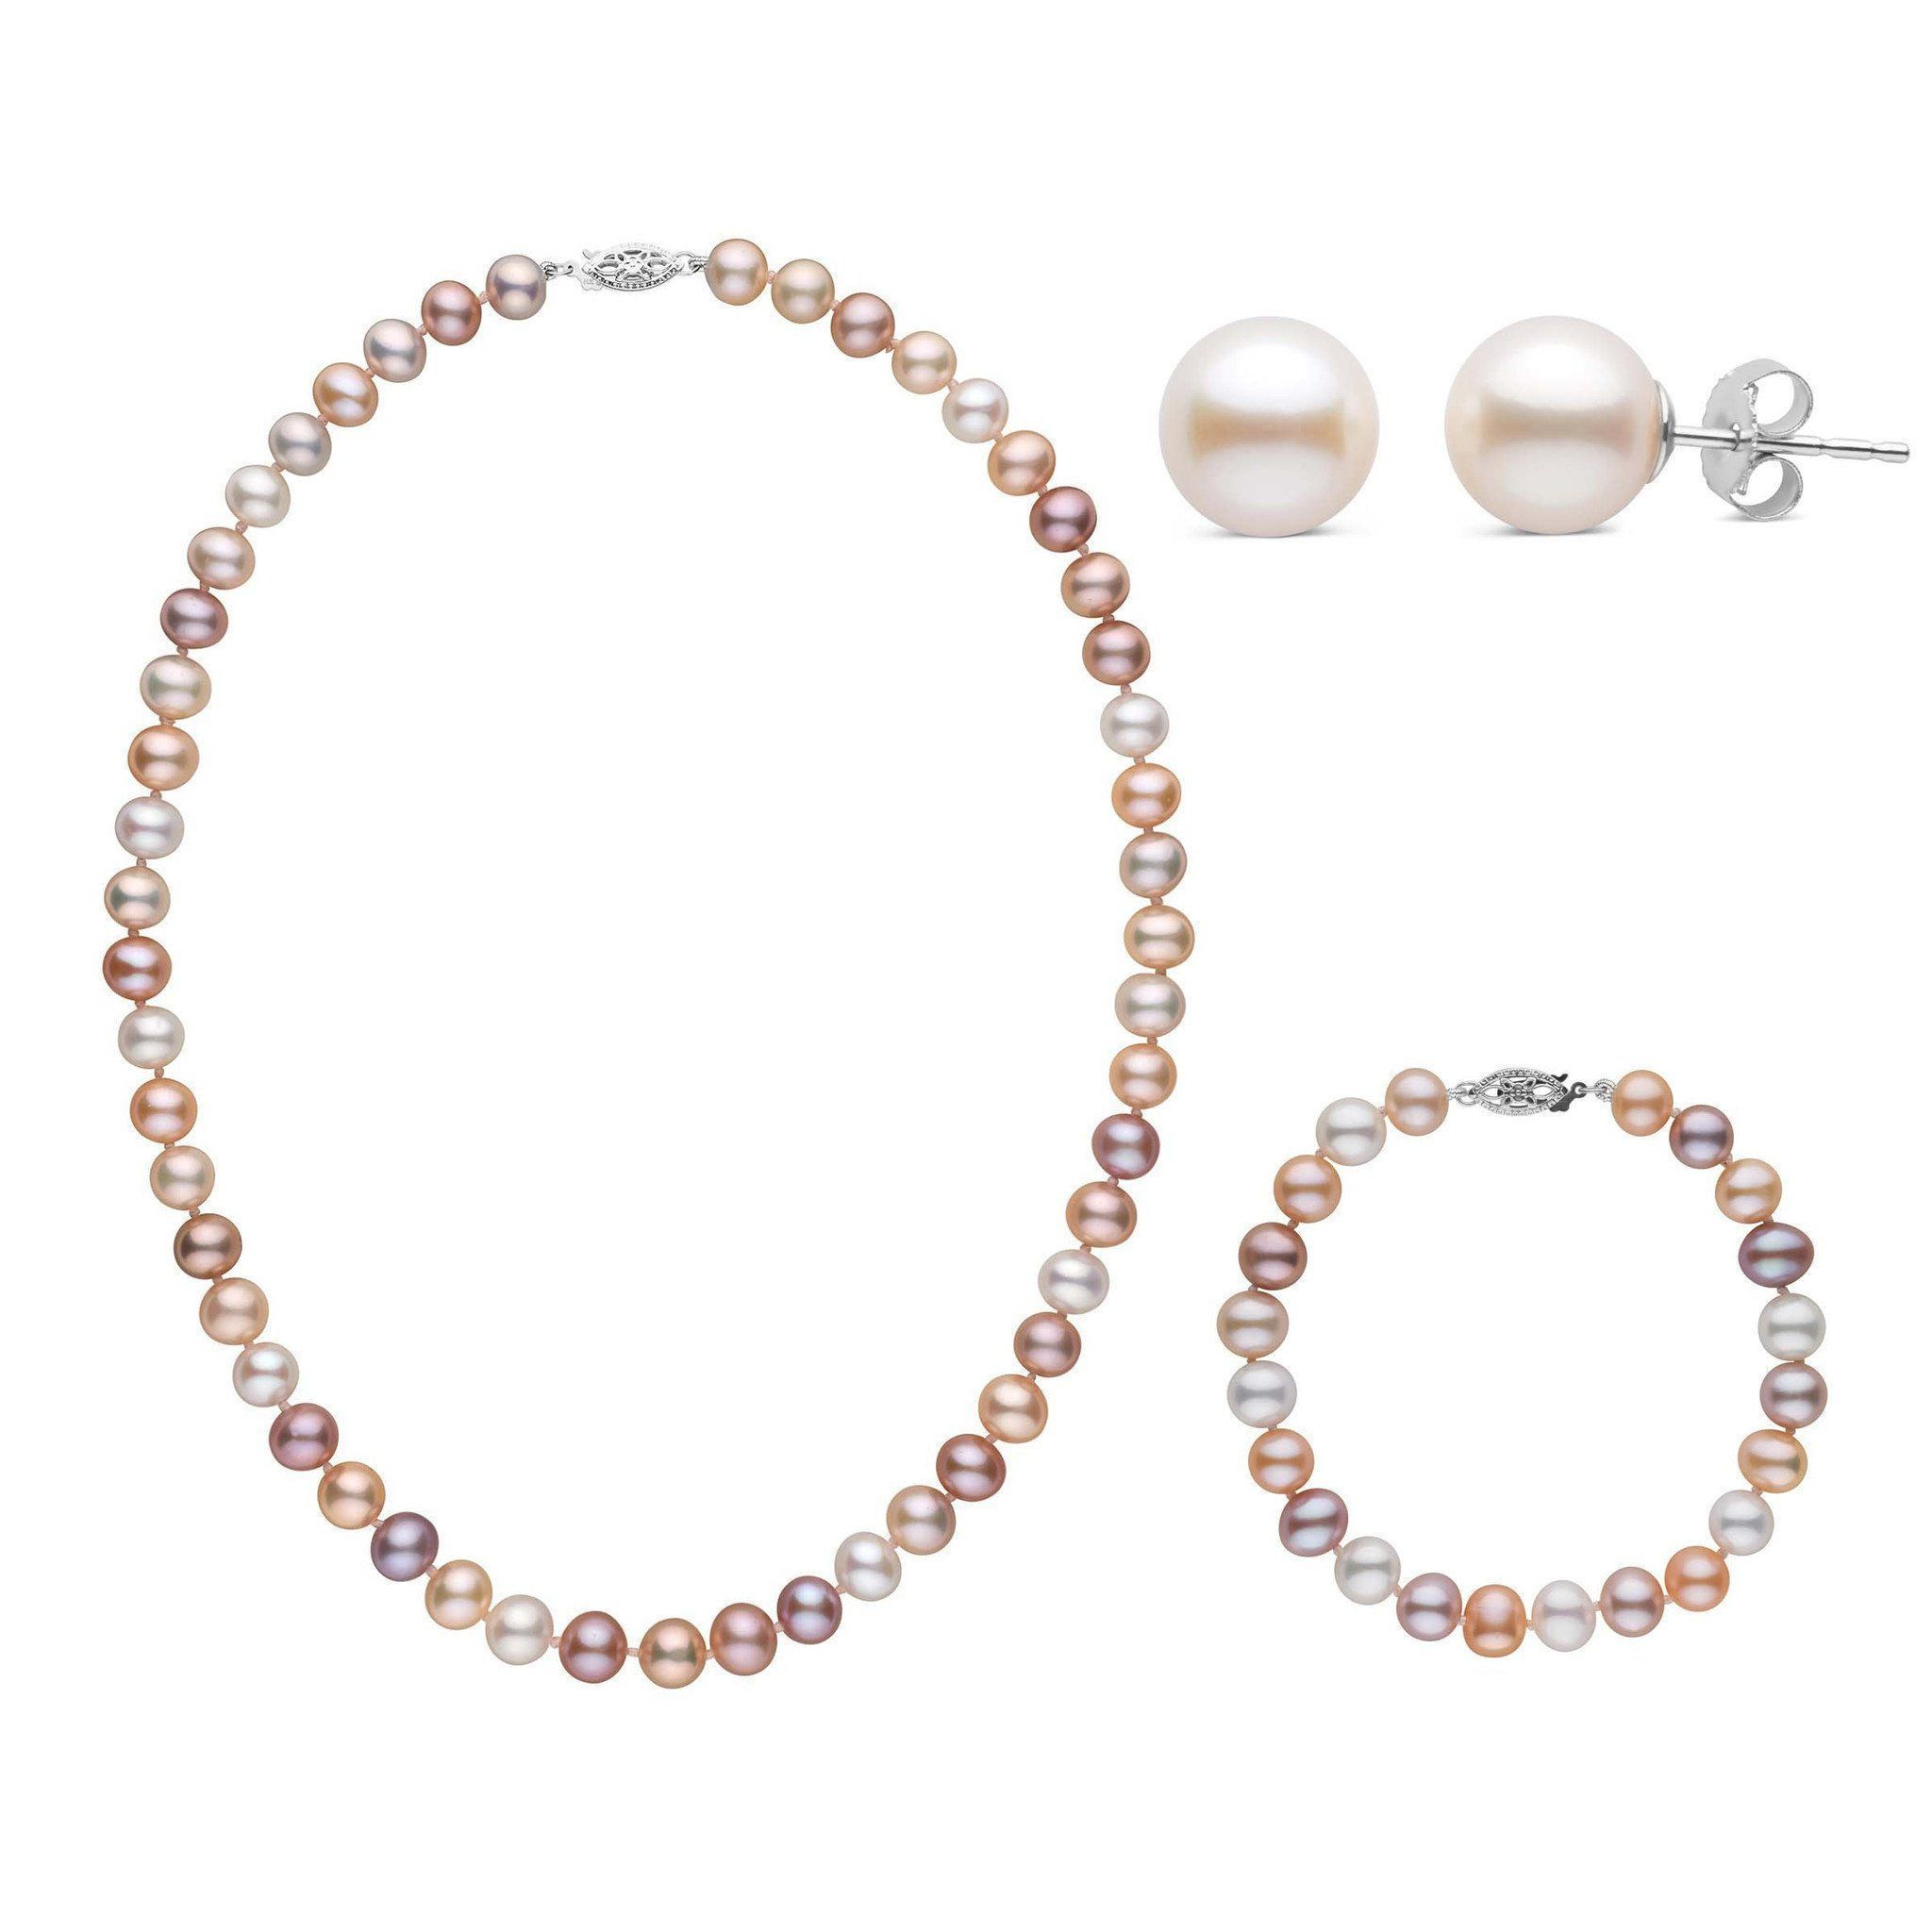 16 Inch 3 Piece Set of 7.5-8.0 mm AA+ Multicolor Freshwater Pearls